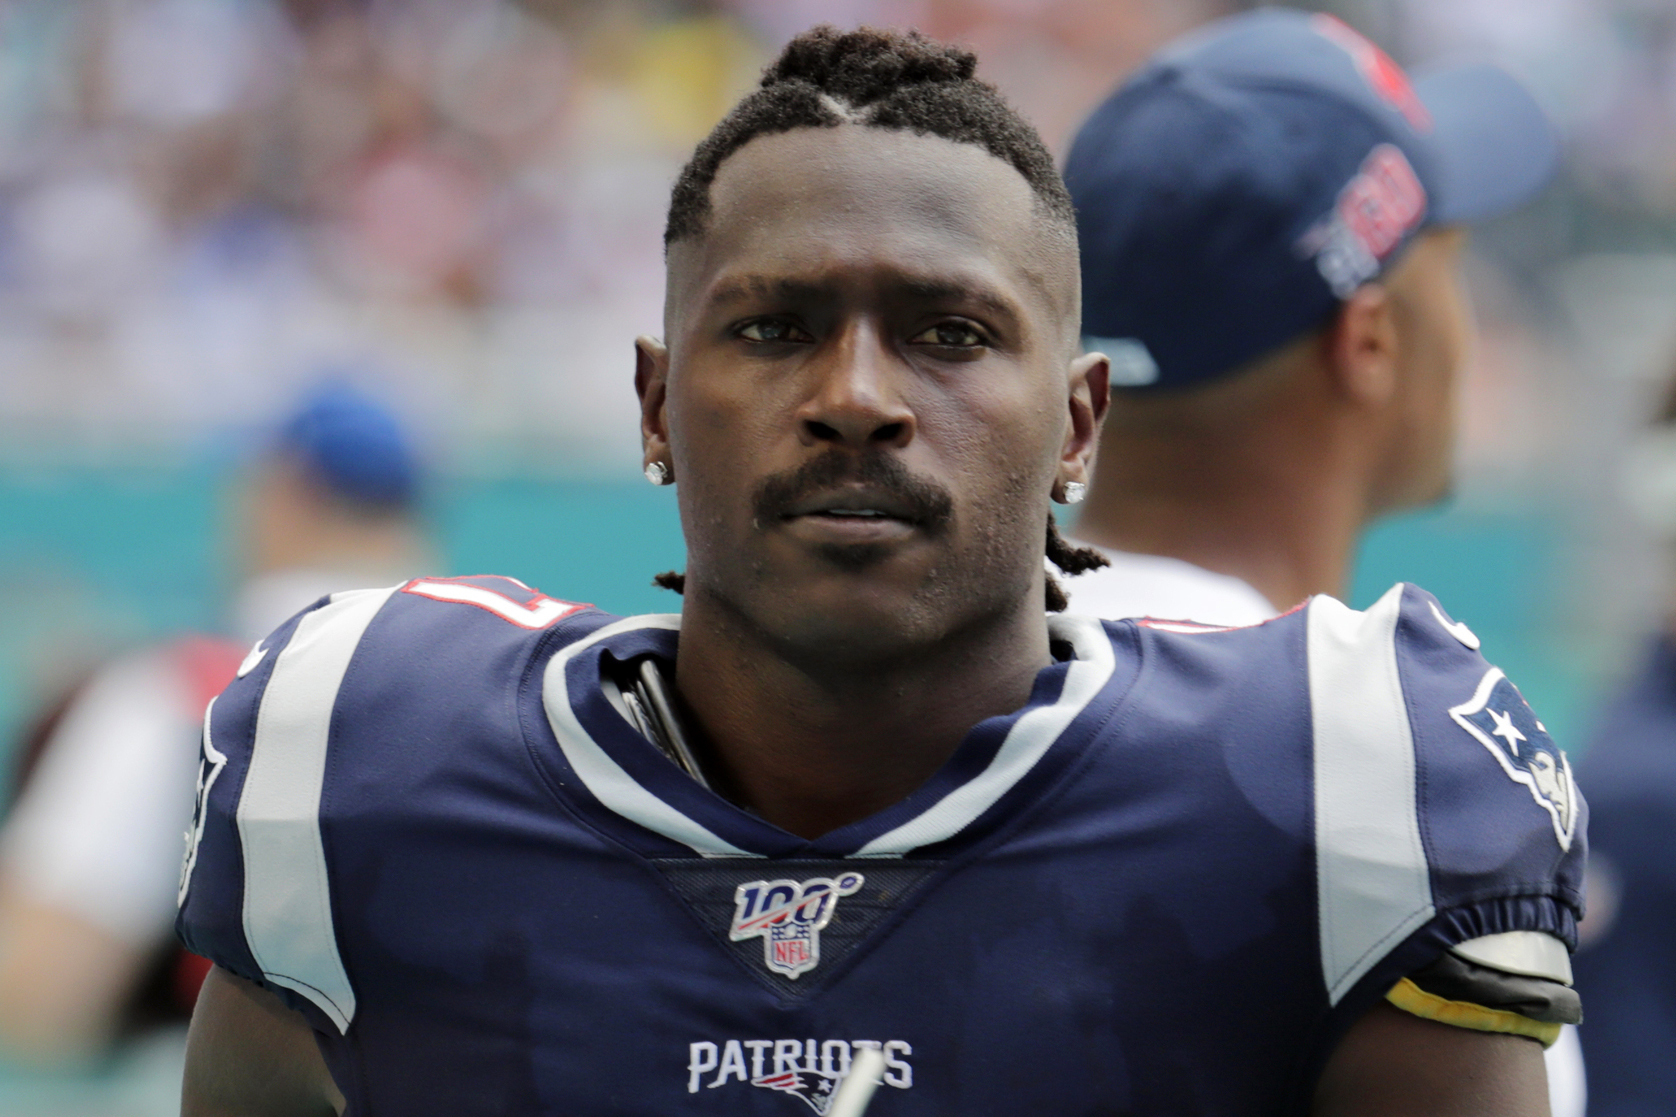 Antonio Brown arrested: NFL star turns himself in at Florida jail